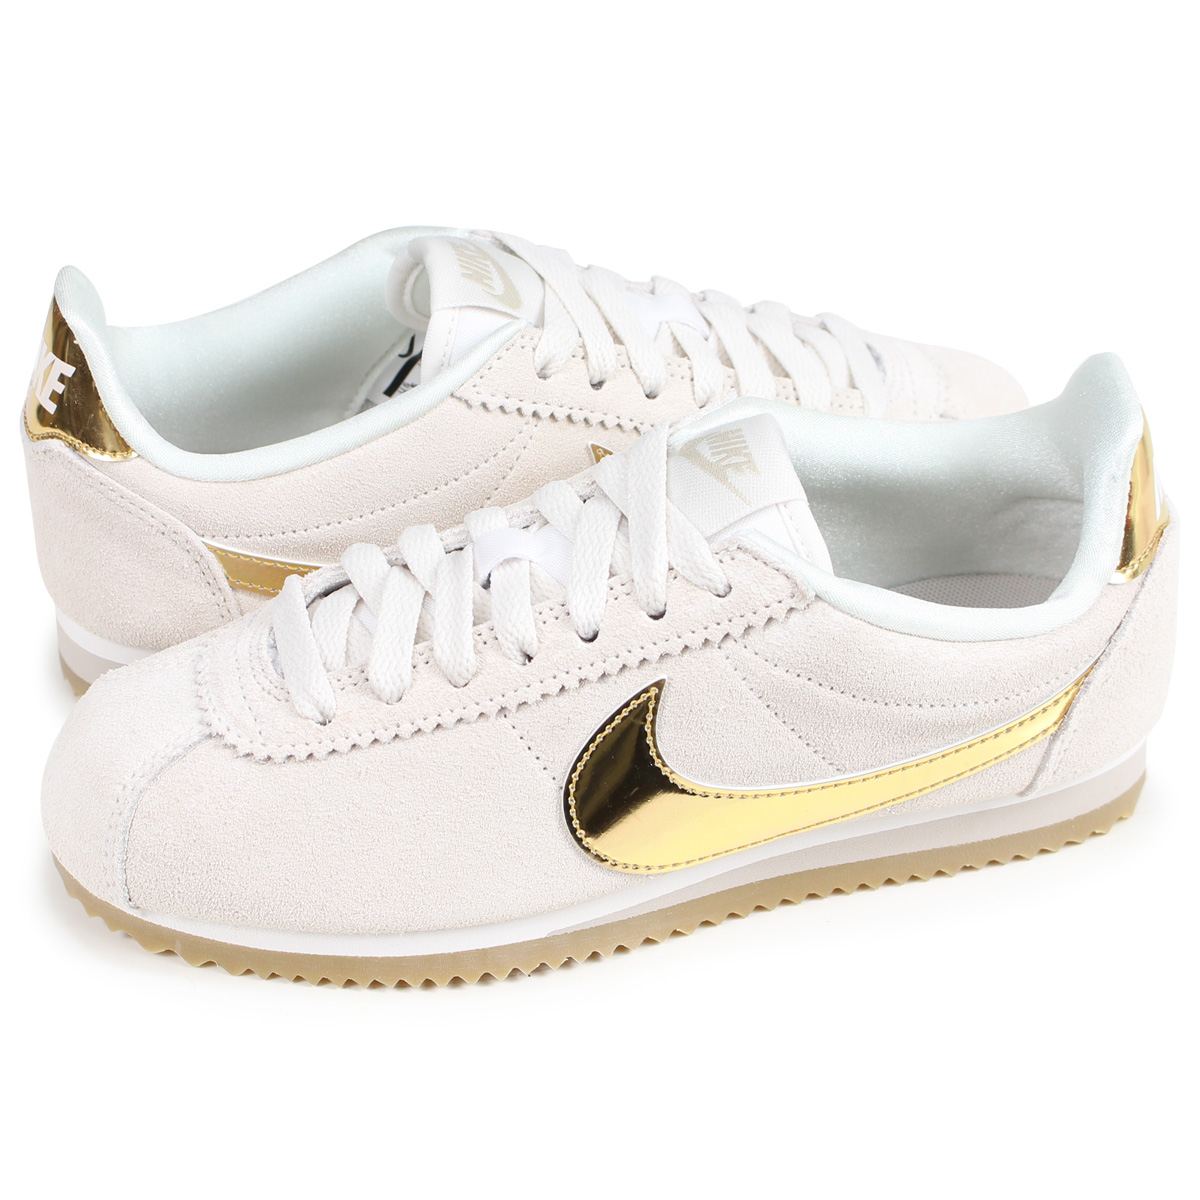 newest collection c74e2 86684 NIKE WMNS CLASSIC CORTEZ SE ナイキコルテッツクラシックレディーススニーカー 902,856-013 beige [load  planned Shinnyu load in reservation product 9/11 containing]